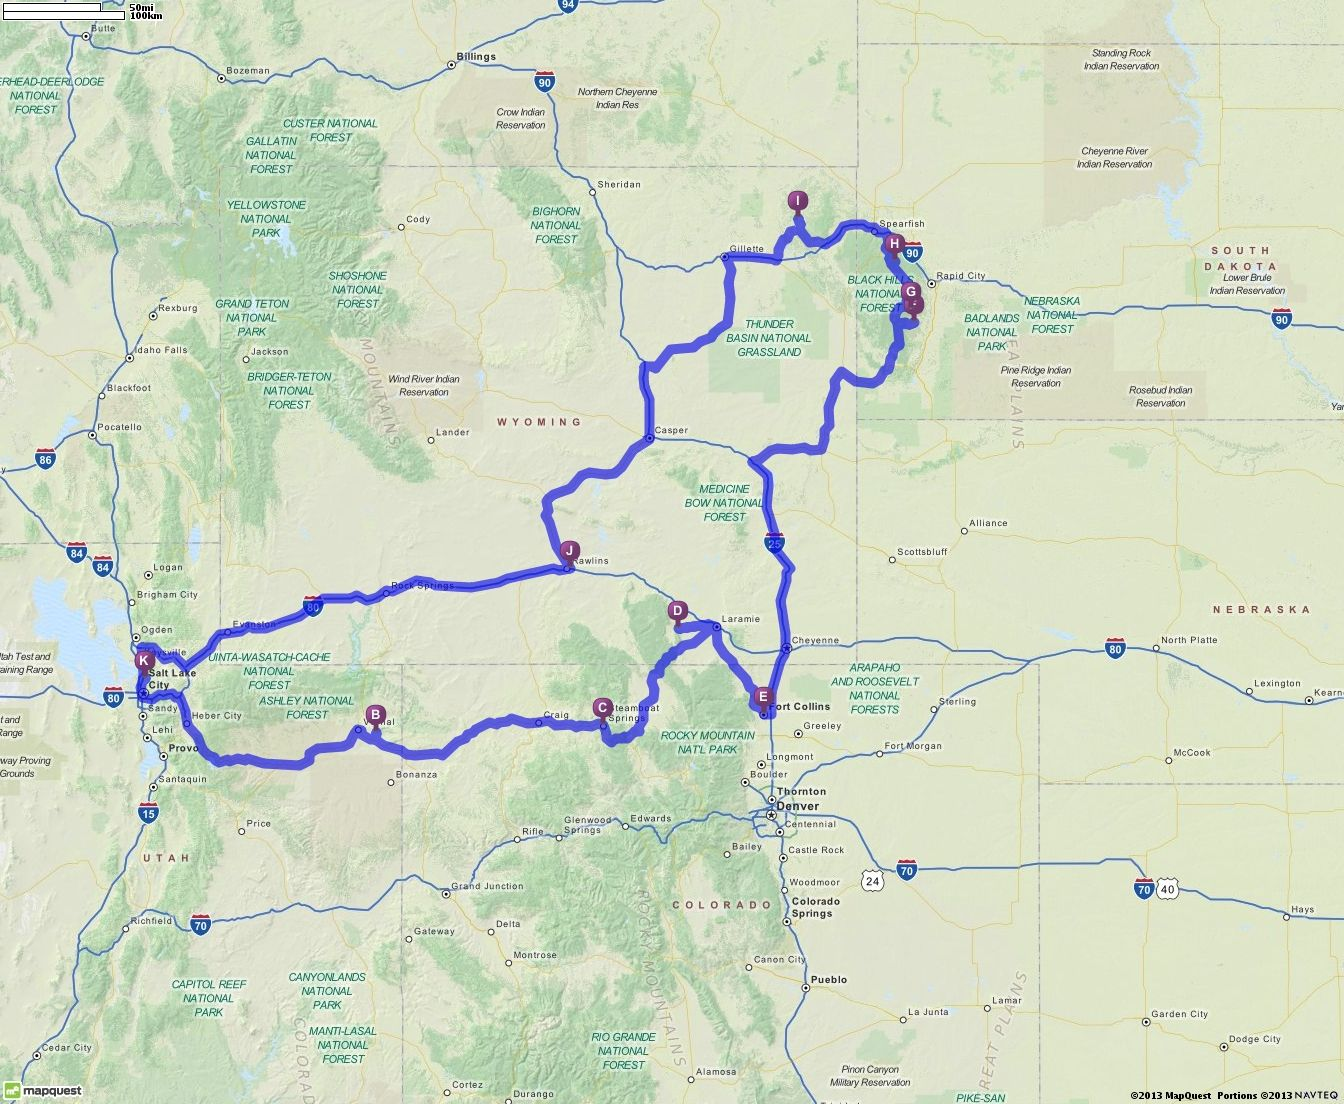 Driving Directions from Bountiful, Utah to Bountiful, Utah ... on adot road conditions, brian head road conditions, memphis road conditions, udot road conditions, oregon road conditions, arches national park road conditions, usa map road conditions, nj road conditions, cleveland road conditions, interstate 80 road conditions, nashville road conditions, pikes peak road conditions, north carolina road conditions, kauai road conditions, chicago road conditions, kentucky road conditions, southeast wyoming road conditions, togwotee pass road conditions, pagosa springs road conditions, flagstaff road conditions,